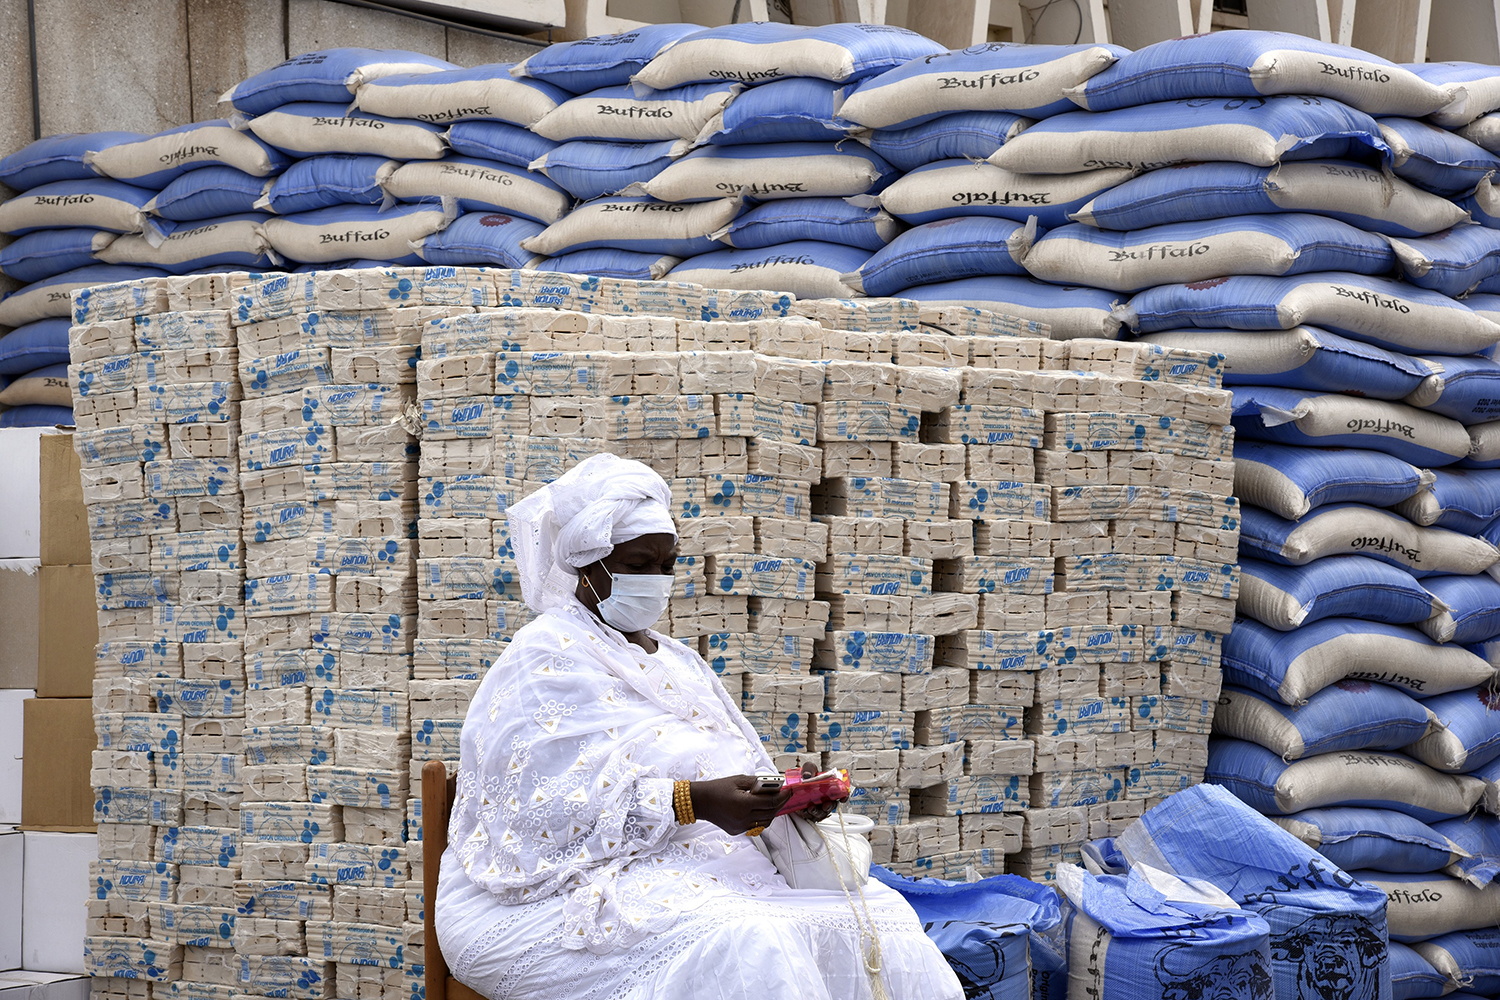 A municipal agent waits for bars of soap and bags of rice to be distributed to residents of the 19 municipalities in Dakar, Senegal, on April 10. SEYLLOU/AFP via Getty Images